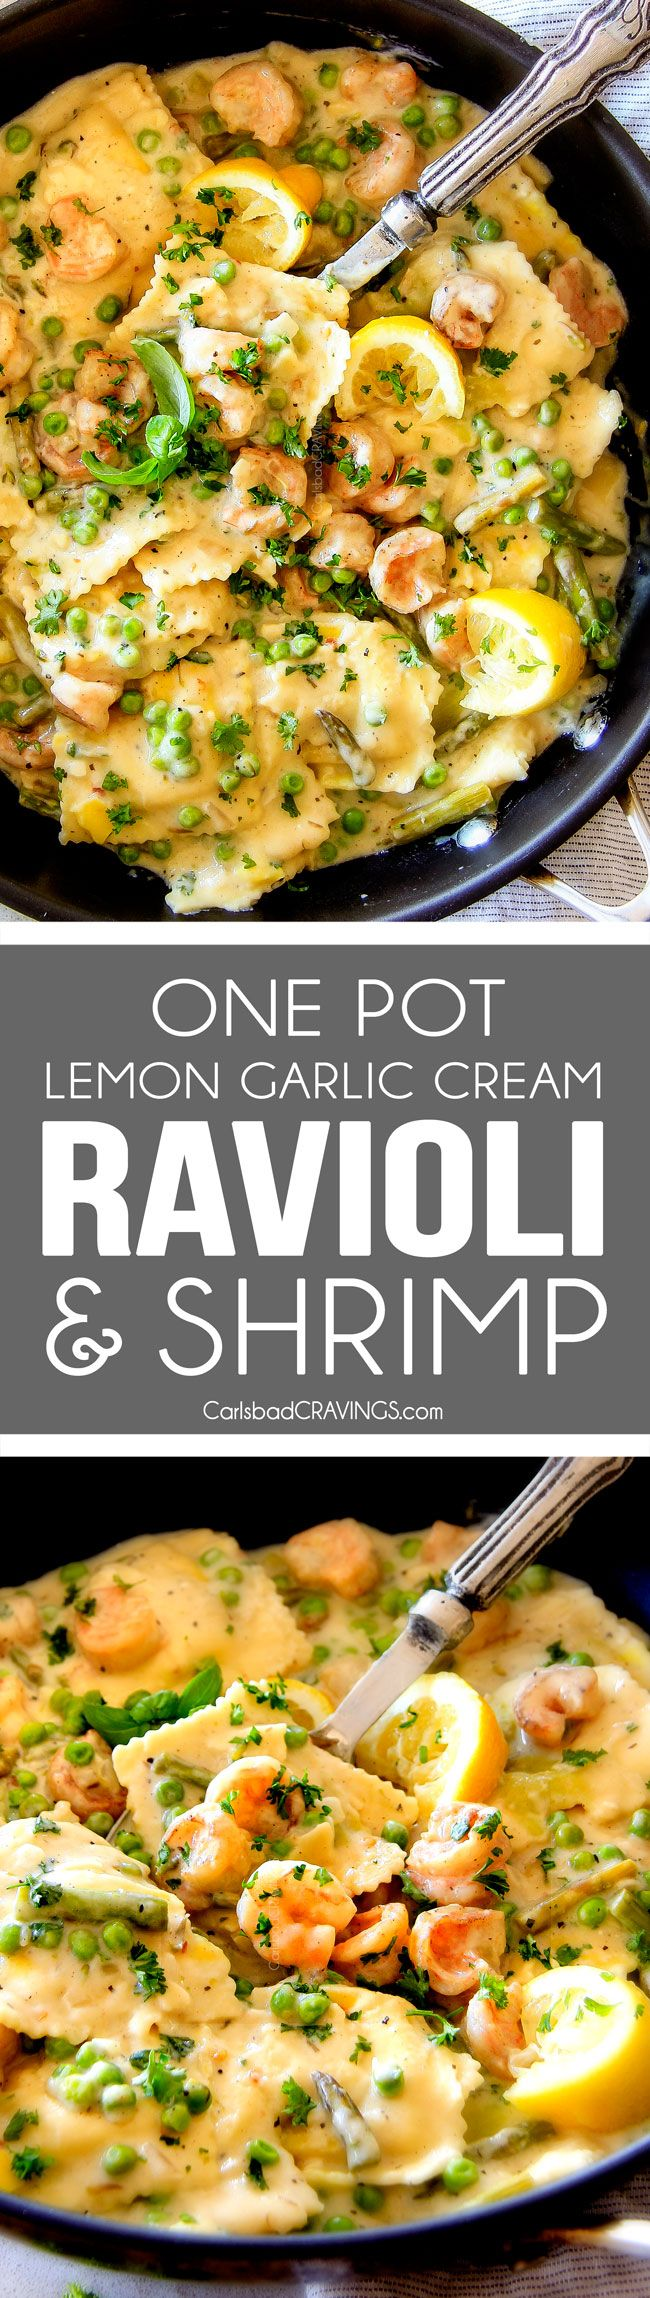 30 Minute, ONE POT (Lightened Up!) Lemon Garlic Cream Ravioli with Shrimp and Asparagus is wonderfully creamy, bursting with flavor and so quick and easy with only one pot to clean!